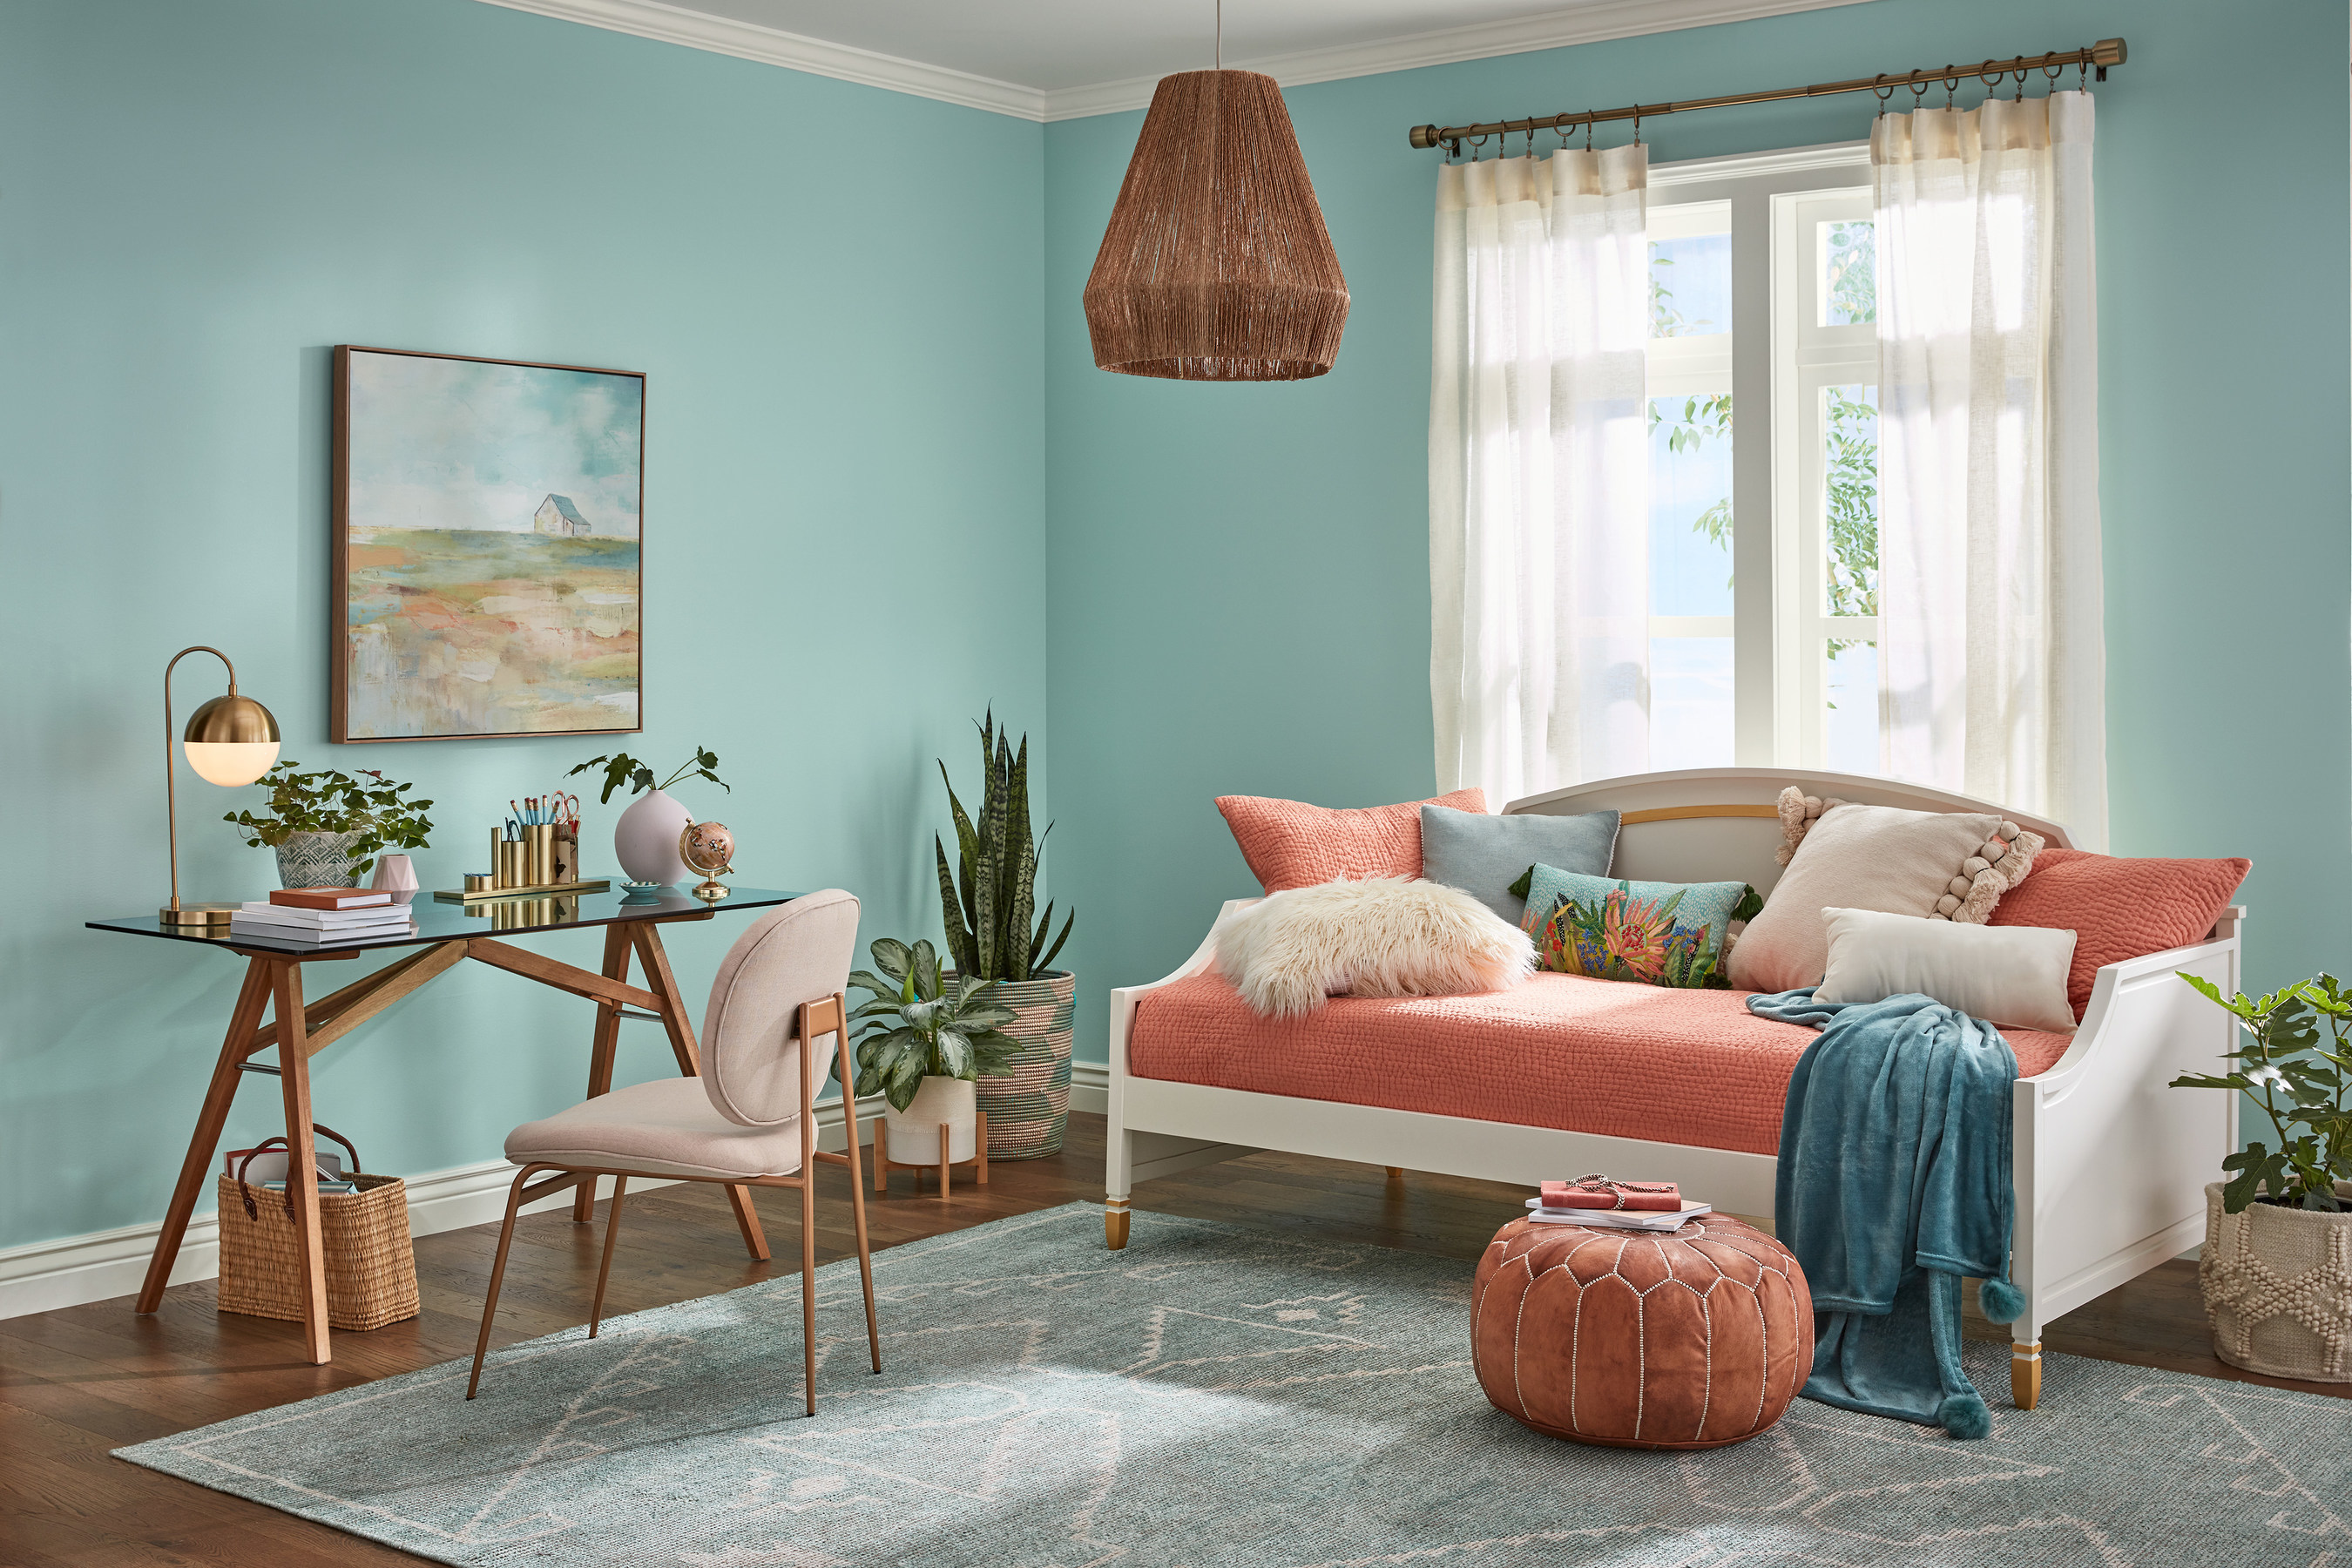 Hgtv Home By Sherwin Williams Announces Its 2020 Color